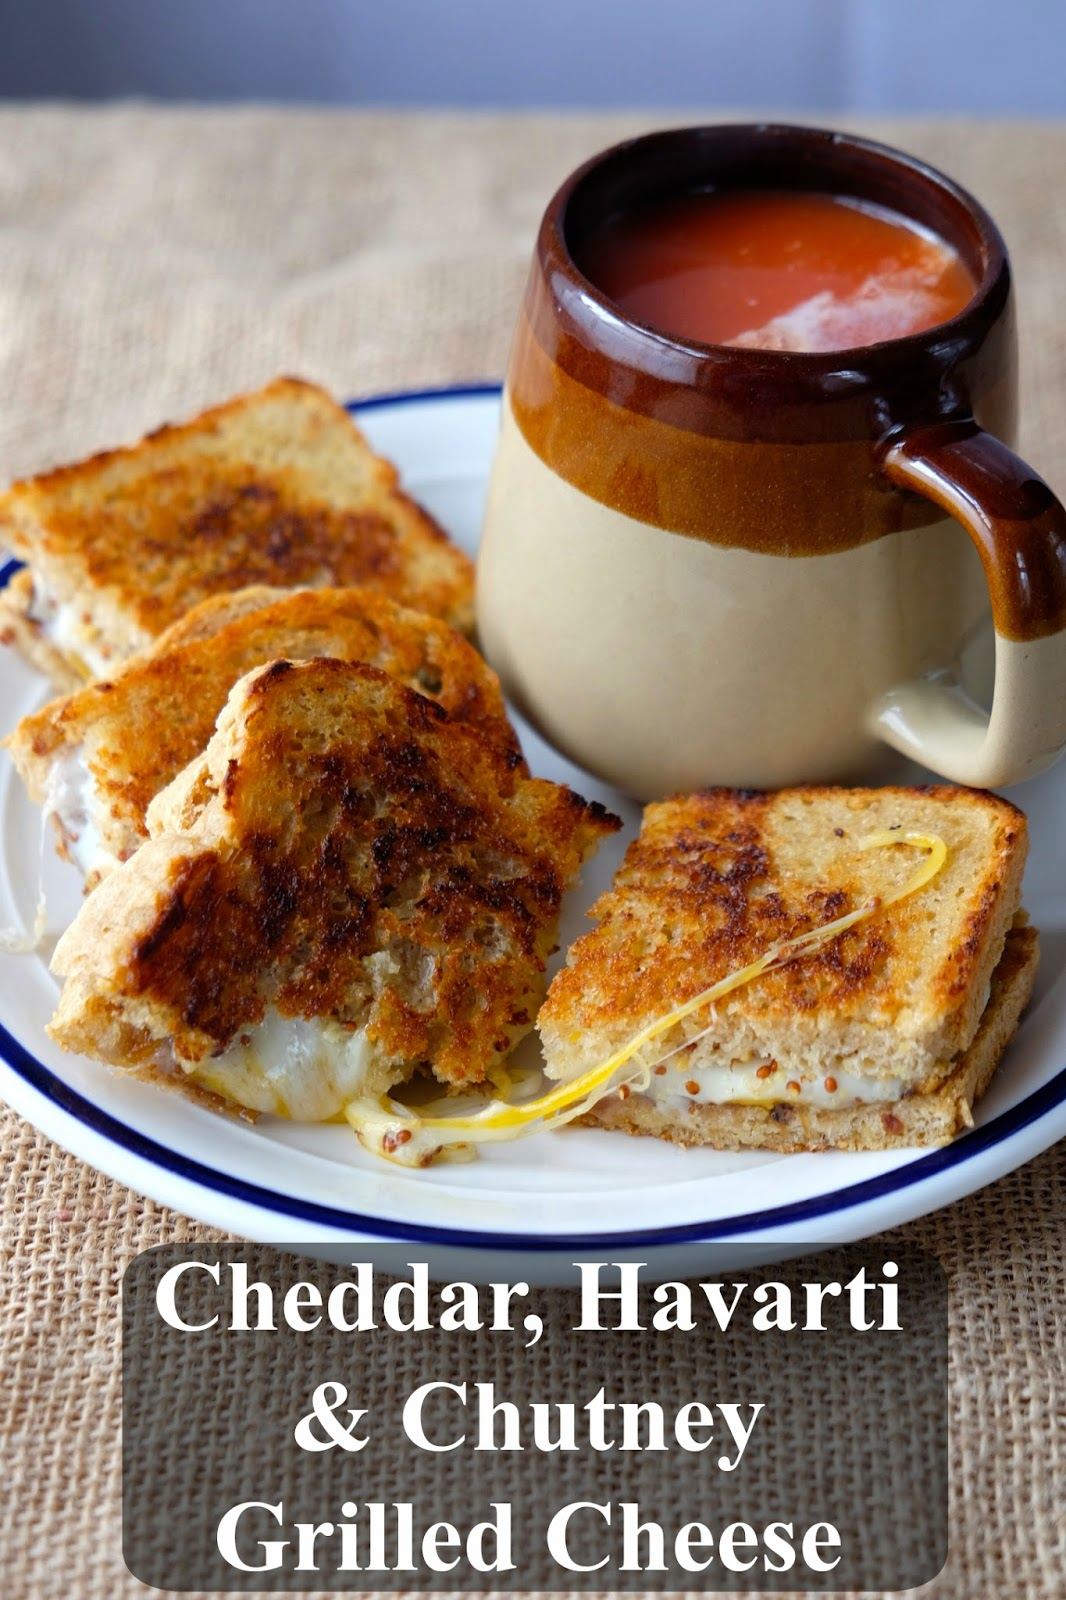 http://www.farmfreshfeasts.com/2015/04/grilled-cheese-with-cheddar-havarti-and.html